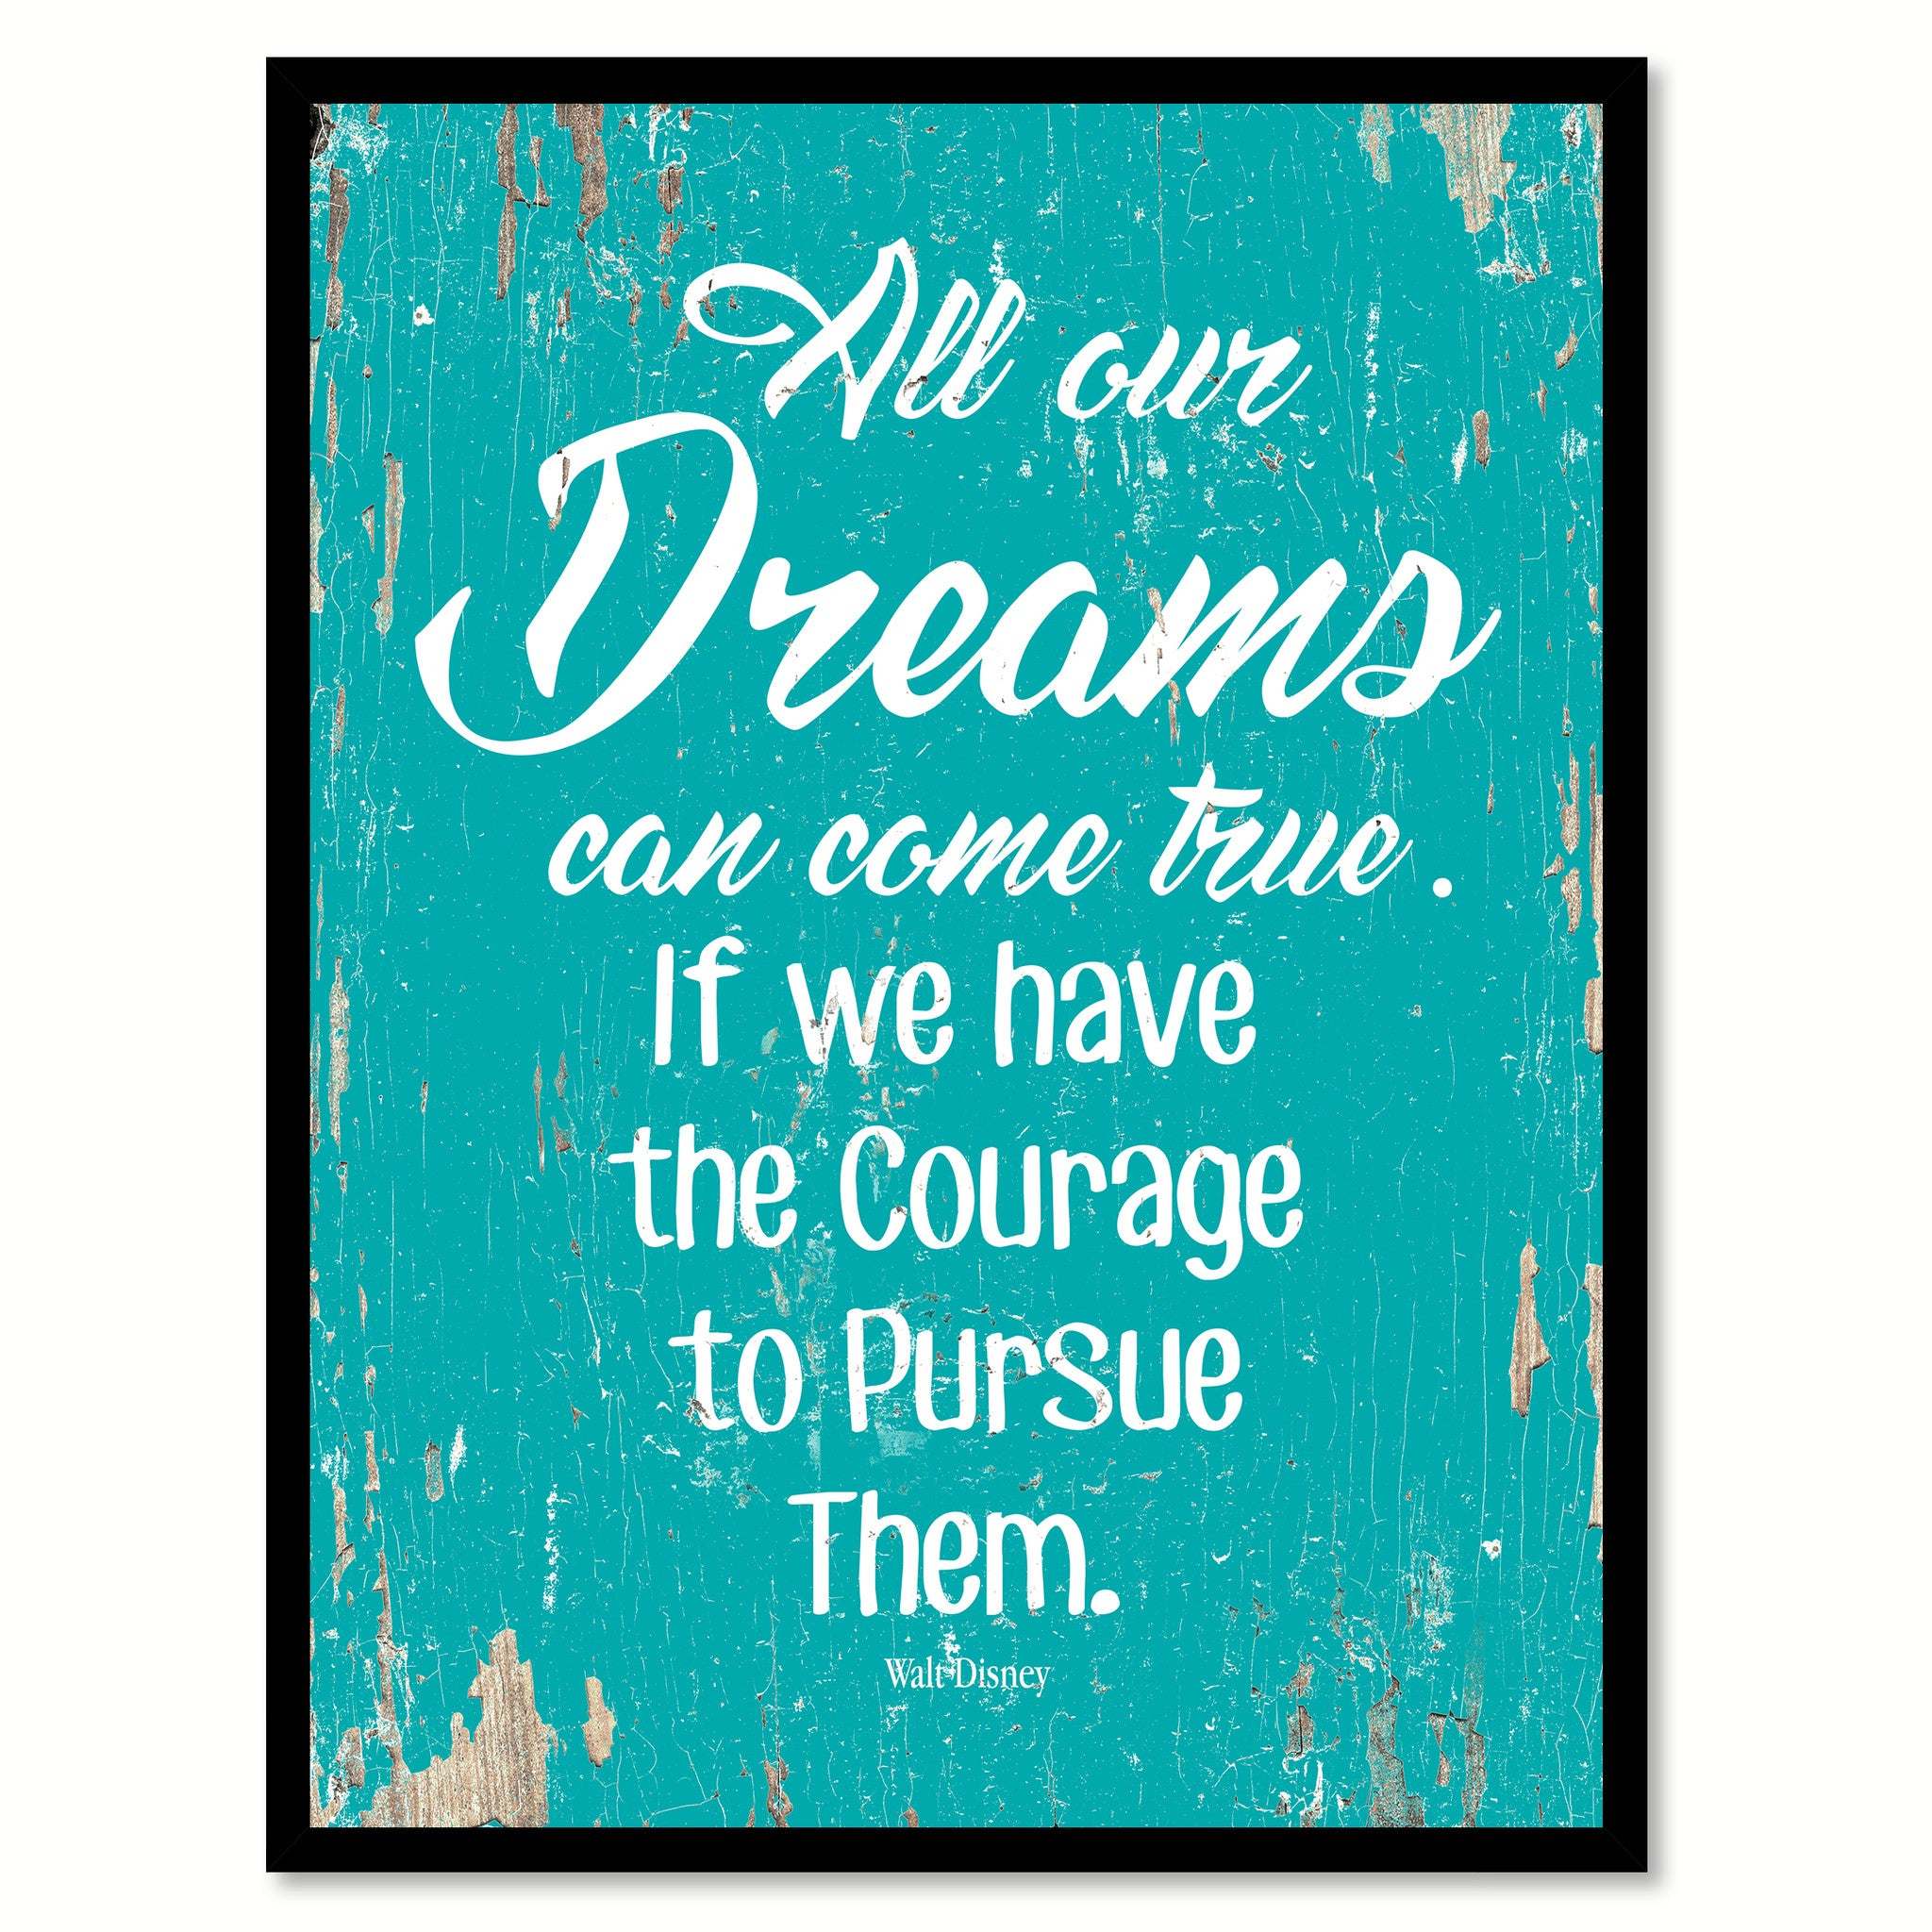 All Our Dreams Can Come True Walt Disney Quote Saying Home Decor Wall Art Gift Ideas 111671